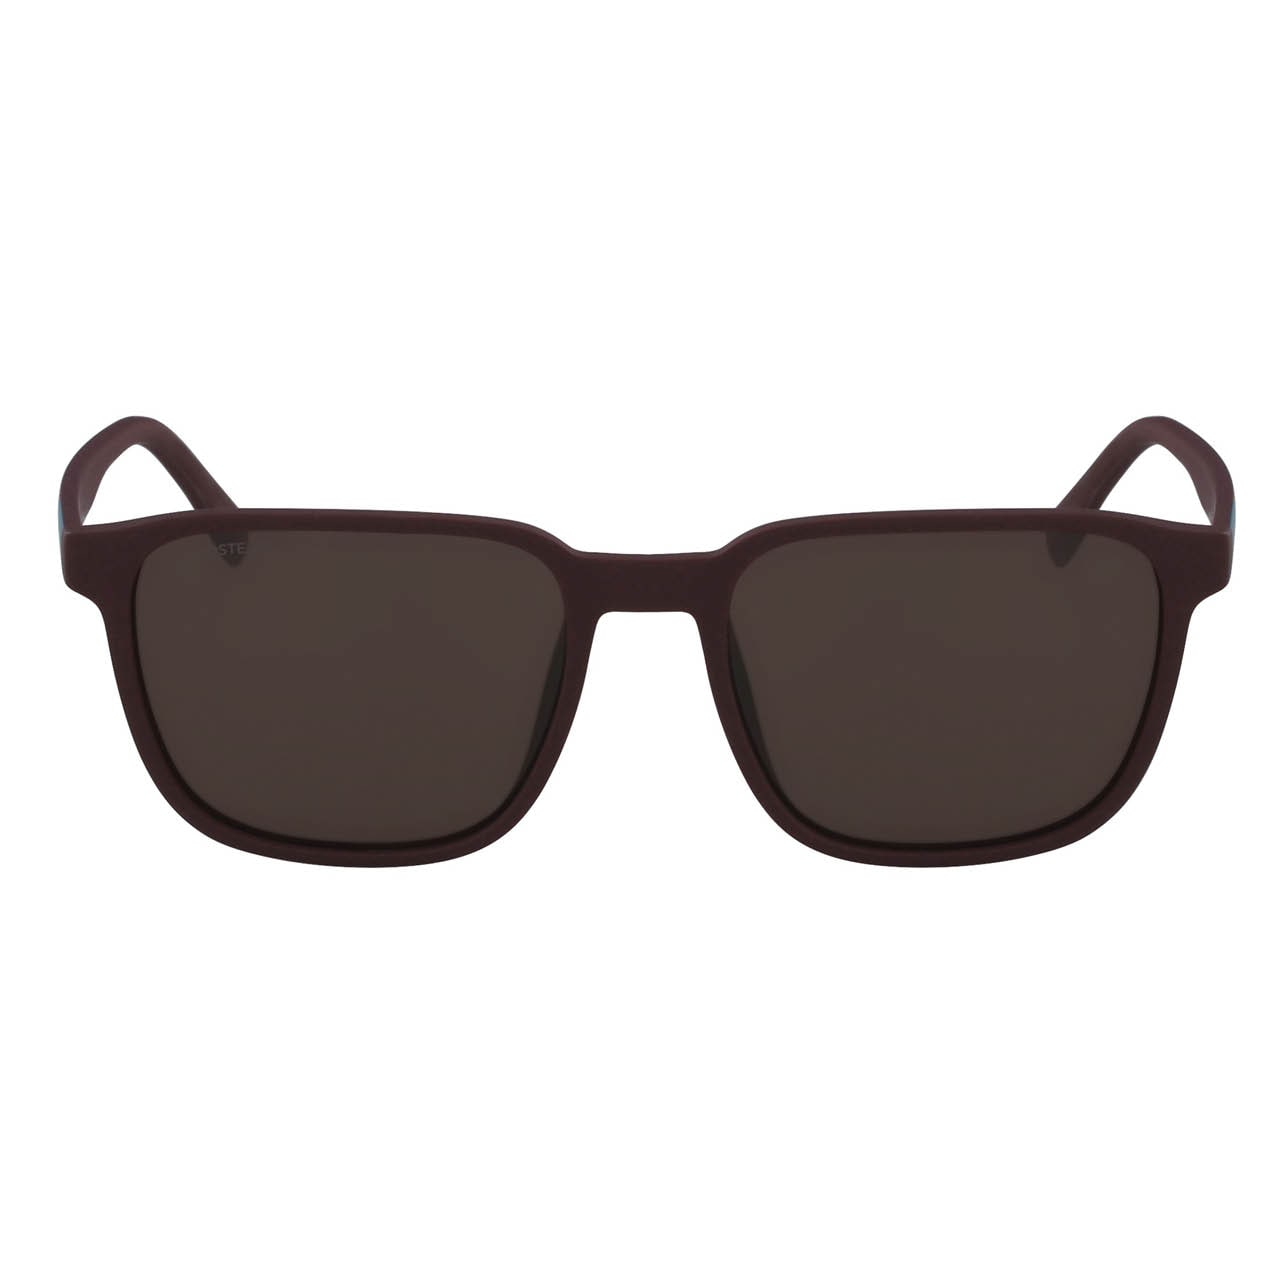 Men's Plastic Square Color Block Sunglasses